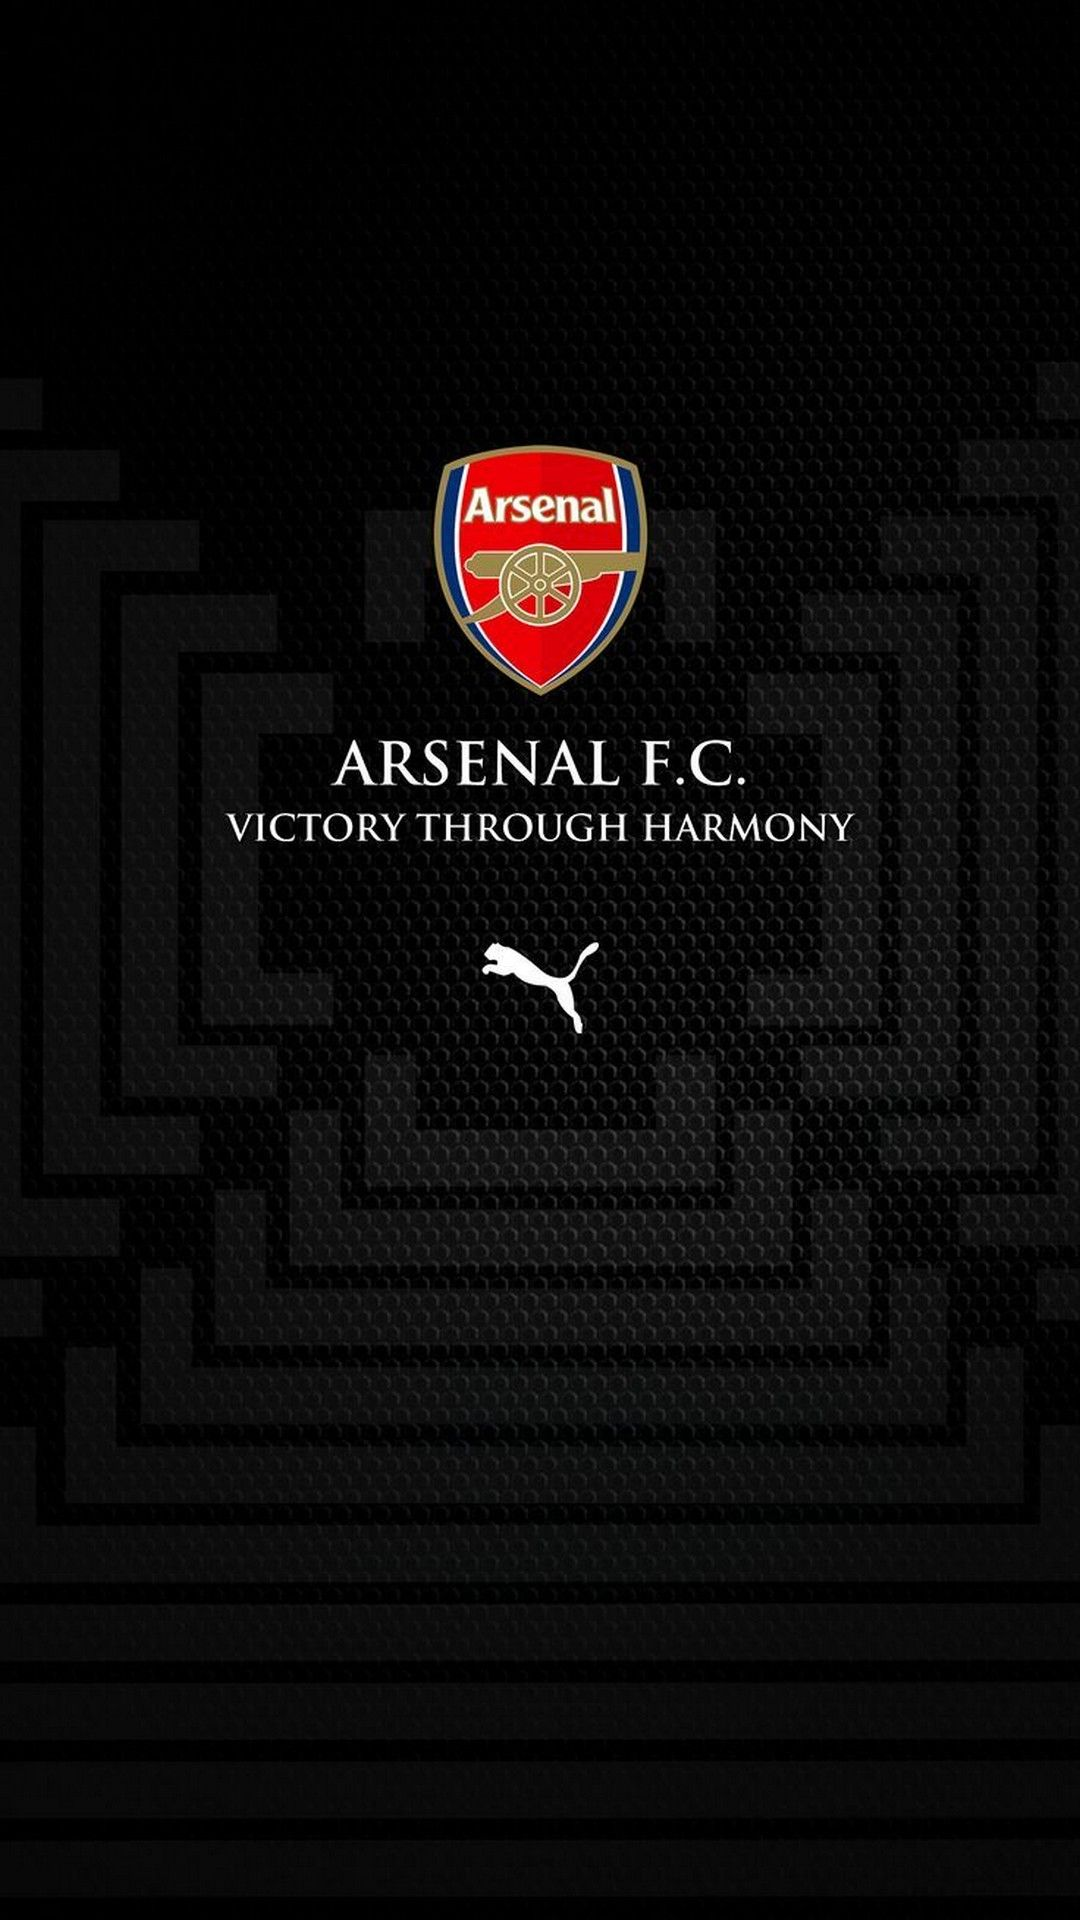 Arsenal Day Wallpaper Hd Football